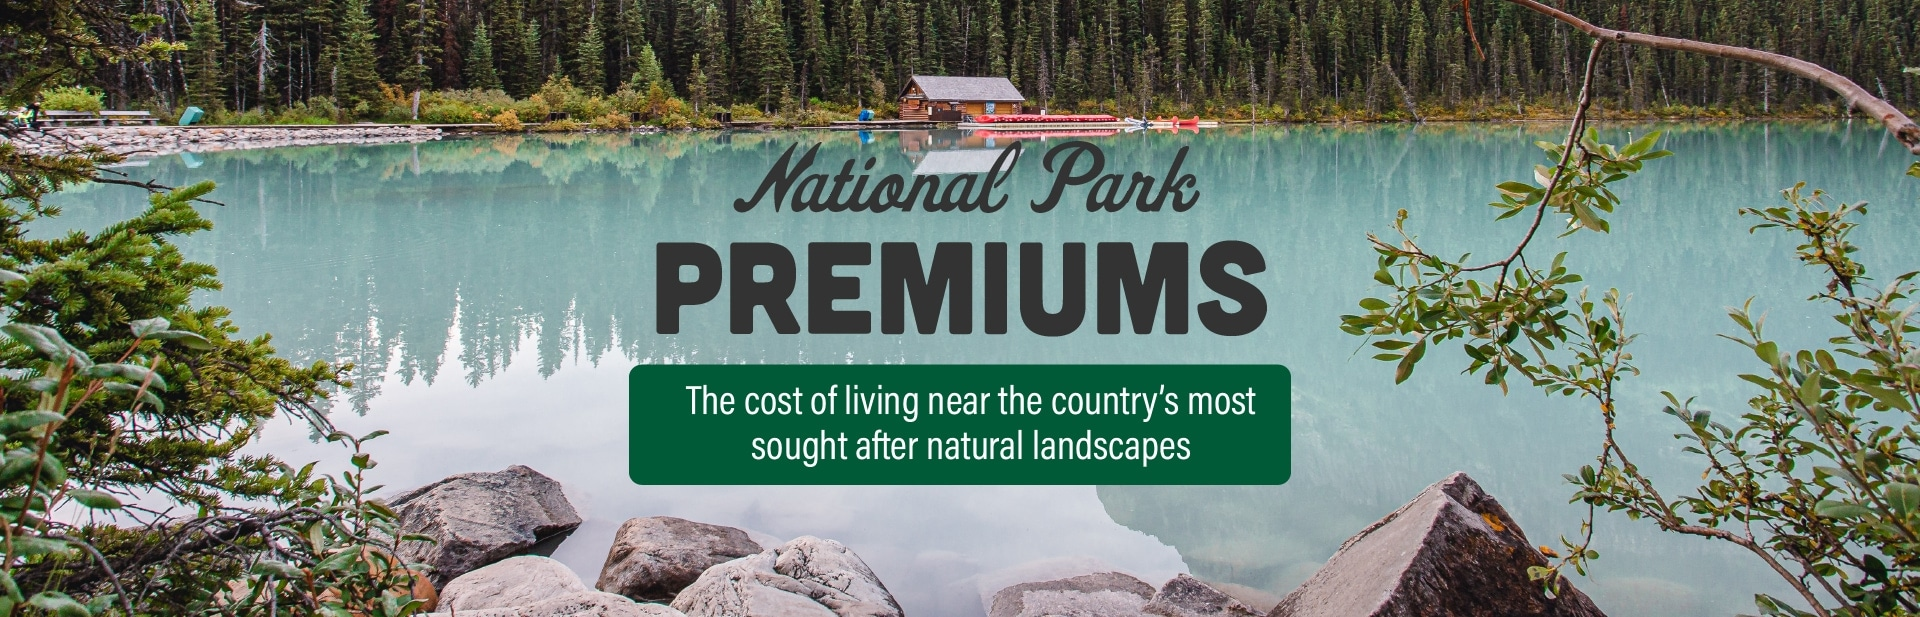 National Park Premiums: The Cost of Living Near the Country's Most Sought After Natural Landscapes